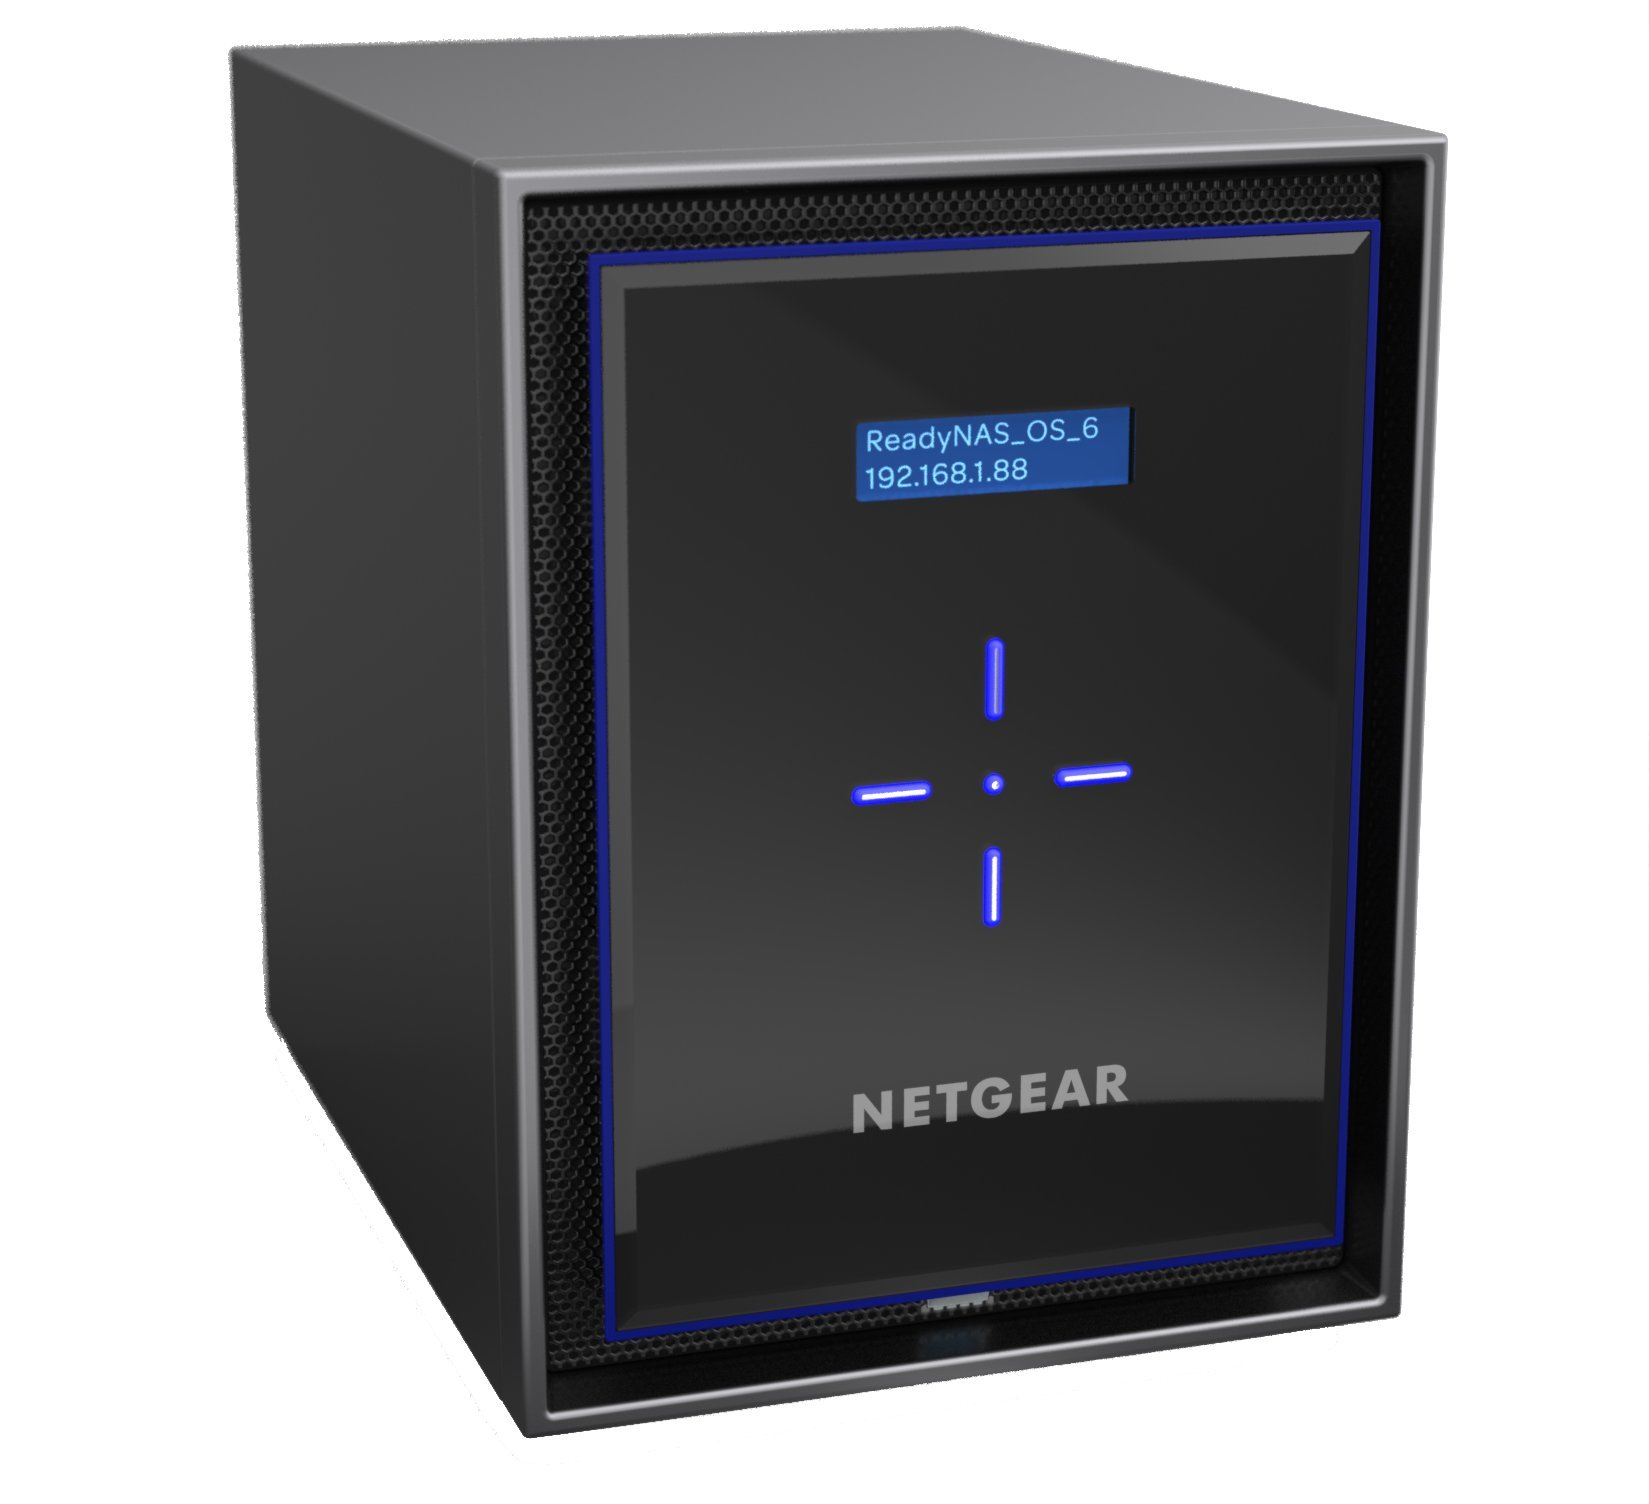 NETGEAR ReadyNAS RN426 6 Bay Diskless High Performance NAS, 60TB Capacity Network Attached Storage, Intel 2.1GHz Quad Core Processor, 4GB RAM, RN42600-100NES by NETGEAR